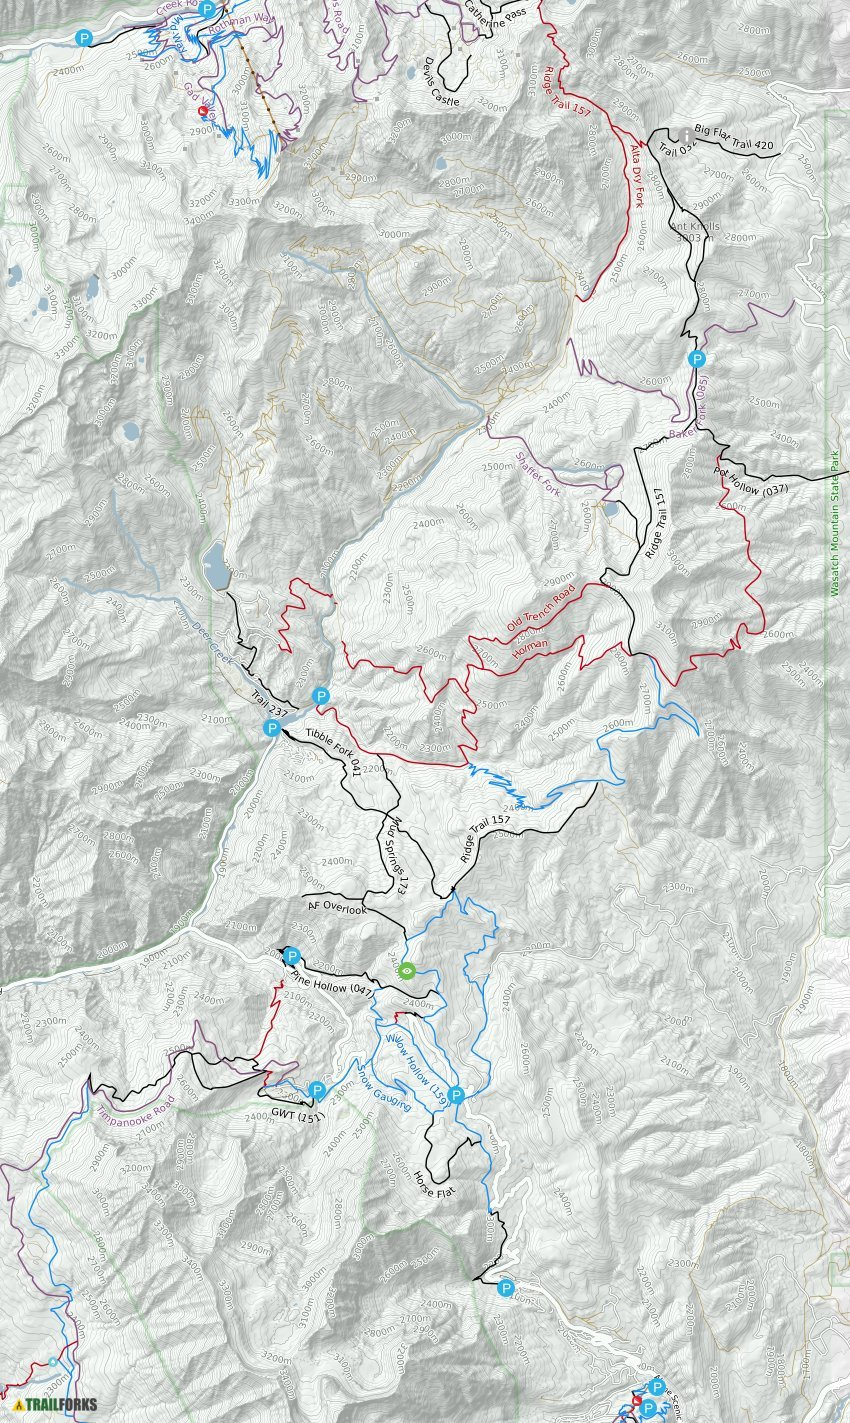 American Fork Canyon Mountain Biking Trails | Trailforks on map of hill air force base utah, map of wallsburg utah, map of dugway utah, map of henefer utah, map of mountain green utah, map of genola utah, map of vineyard utah, map of timber lakes utah, map of new harmony utah, map of sterling utah, map of lapoint utah, map of la verkin utah, map of summit park utah, map of beryl utah, map of great salt lake utah, map of elk ridge utah, map of rush valley utah, map of united states utah, map of south weber utah, map of thanksgiving point utah,